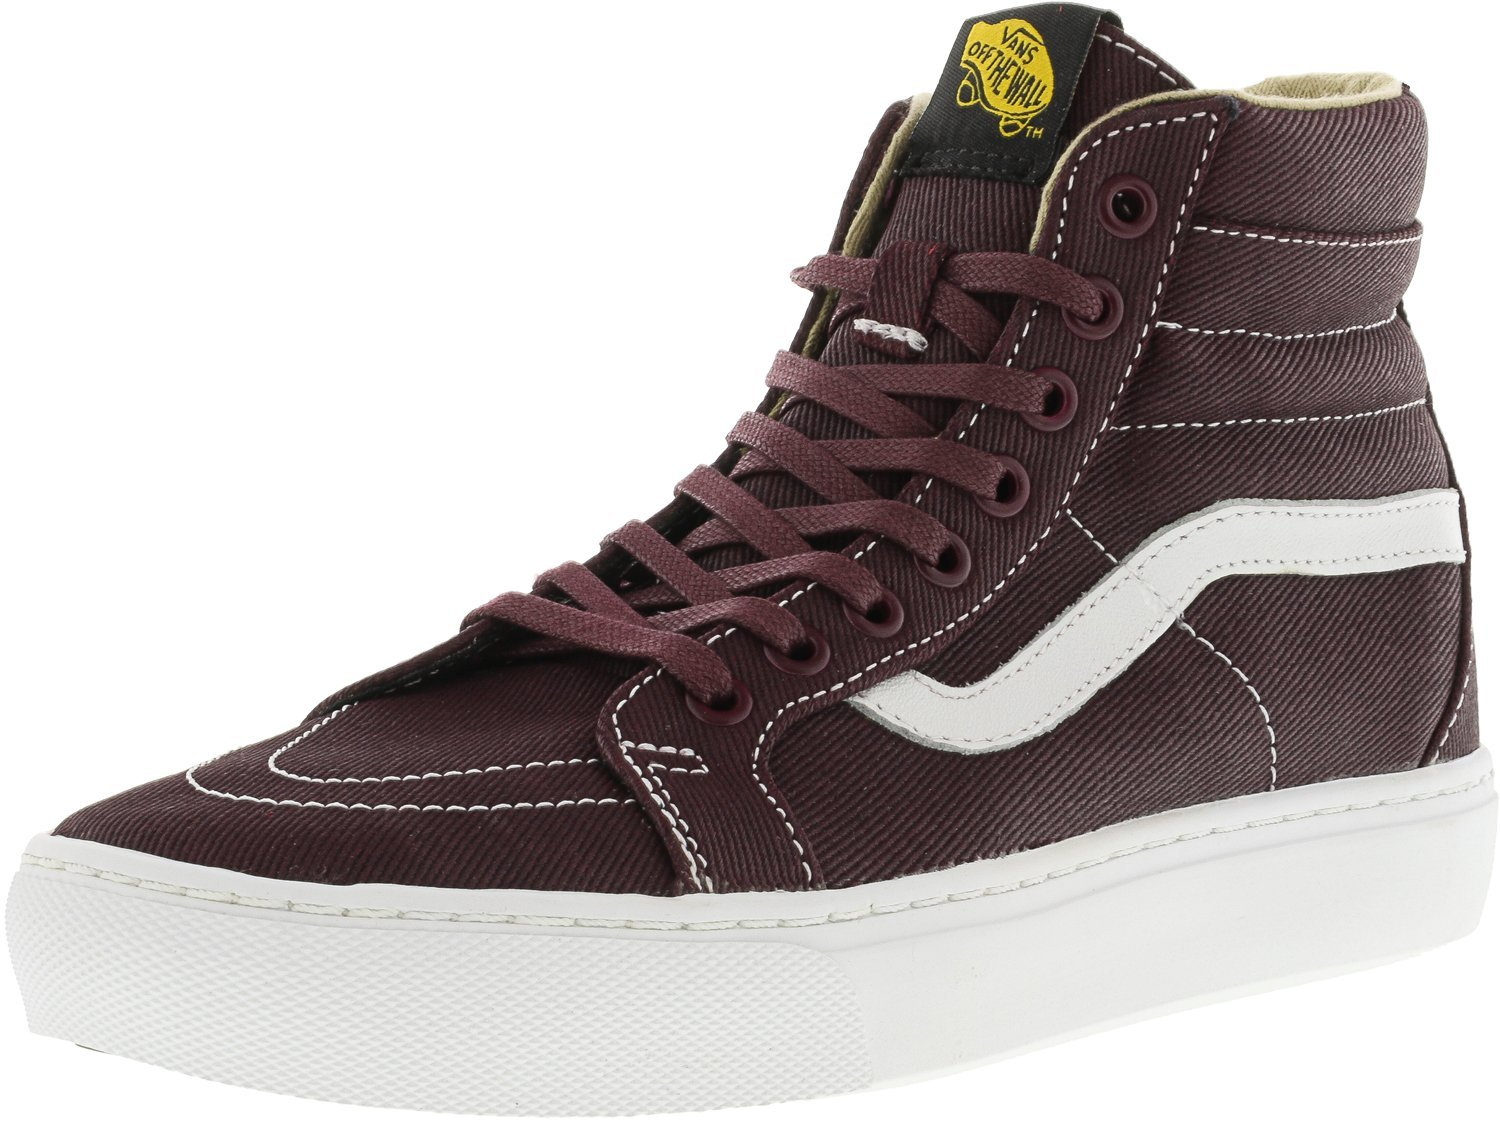 Vans Womens Sk8 Hi Cup Hight Top Lace up Fashion Sneakers B0198EC0NS 11.5 D(M) US|Port Royale